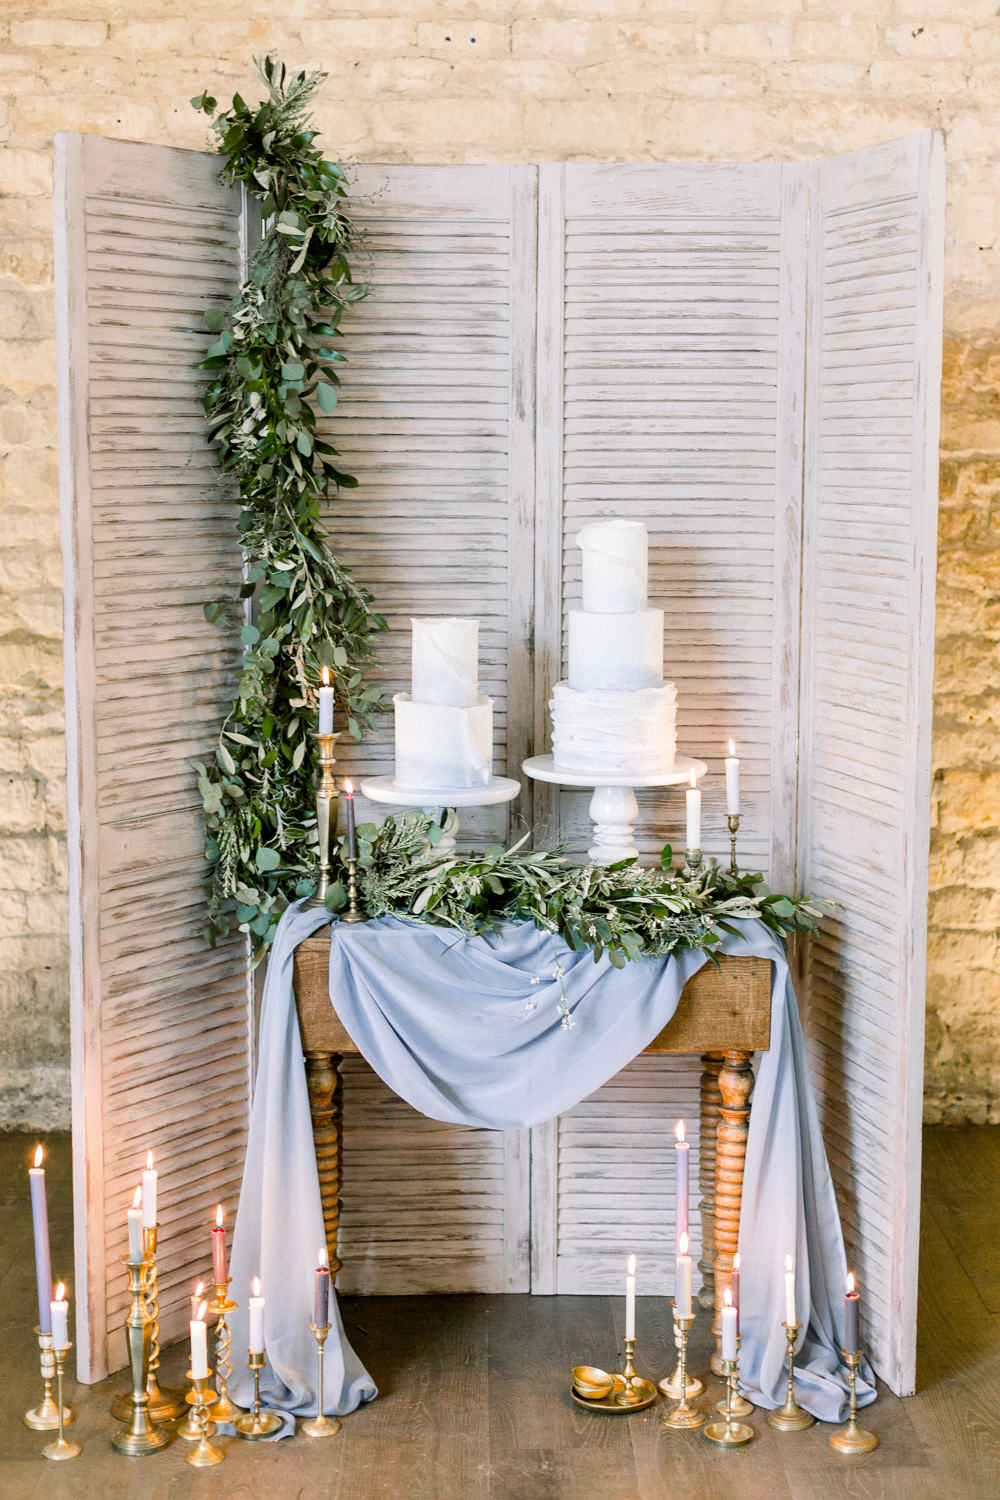 Cake Table Doors Shutters Greenery Foliage Candles Winter Blue Barn Wedding Ideas Joanna Briggs Photography